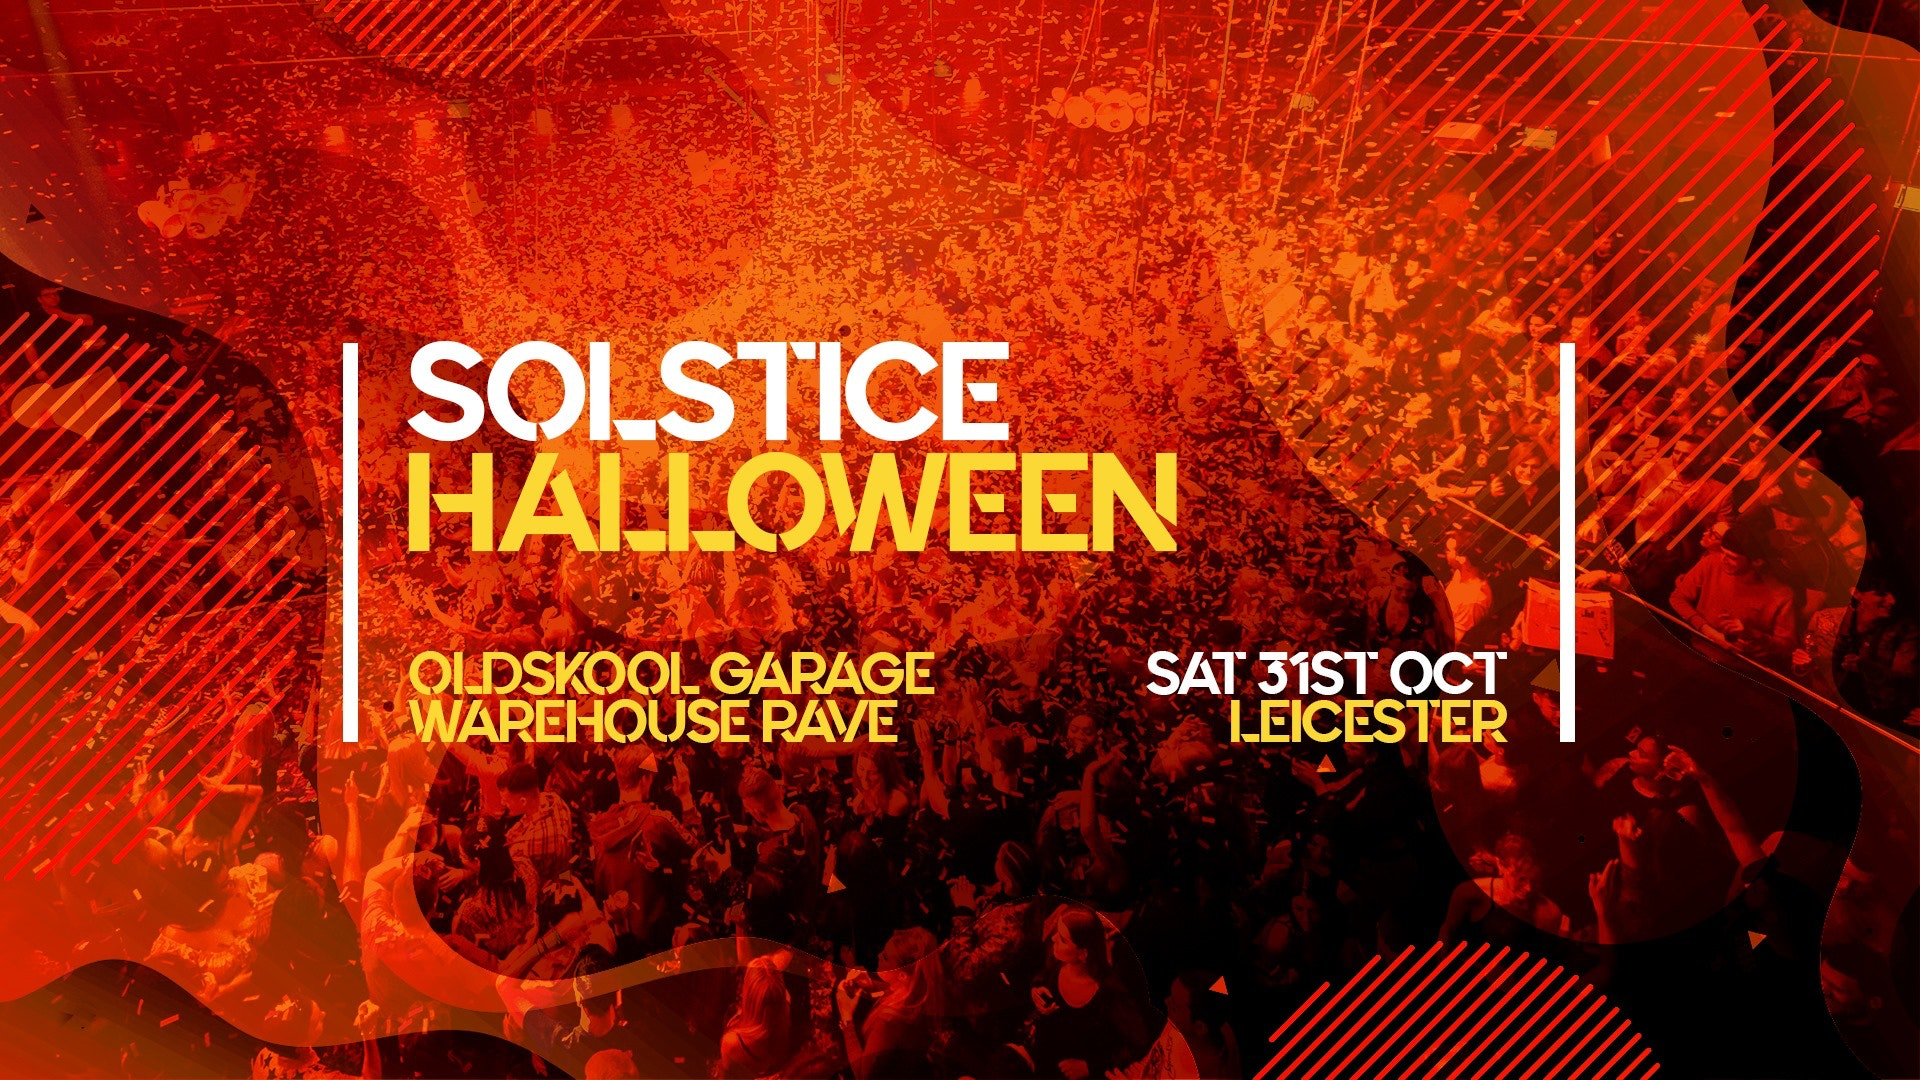 Halloween Oldskool Garage Warehouse Rave – Leicester